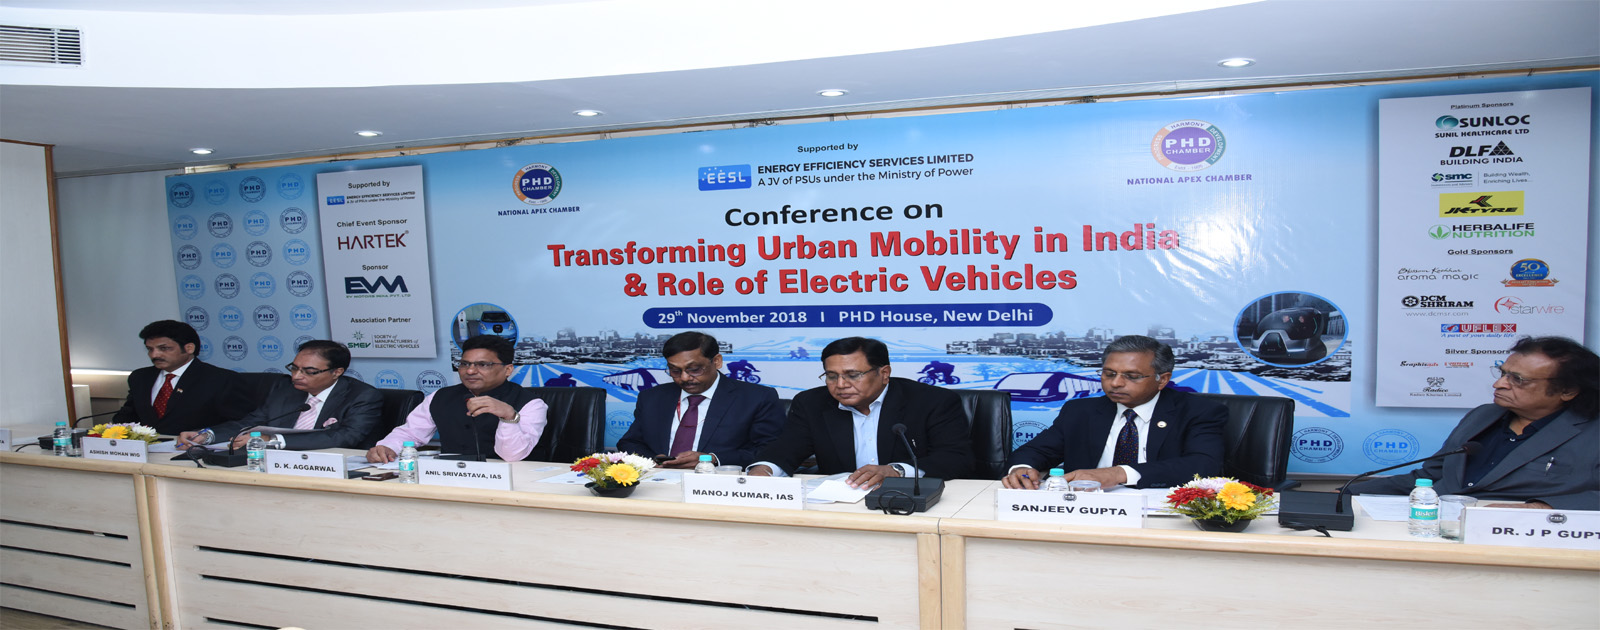 "Conference on ""Transforming Urban Mobility in India & Role of Electric Vehicles"""